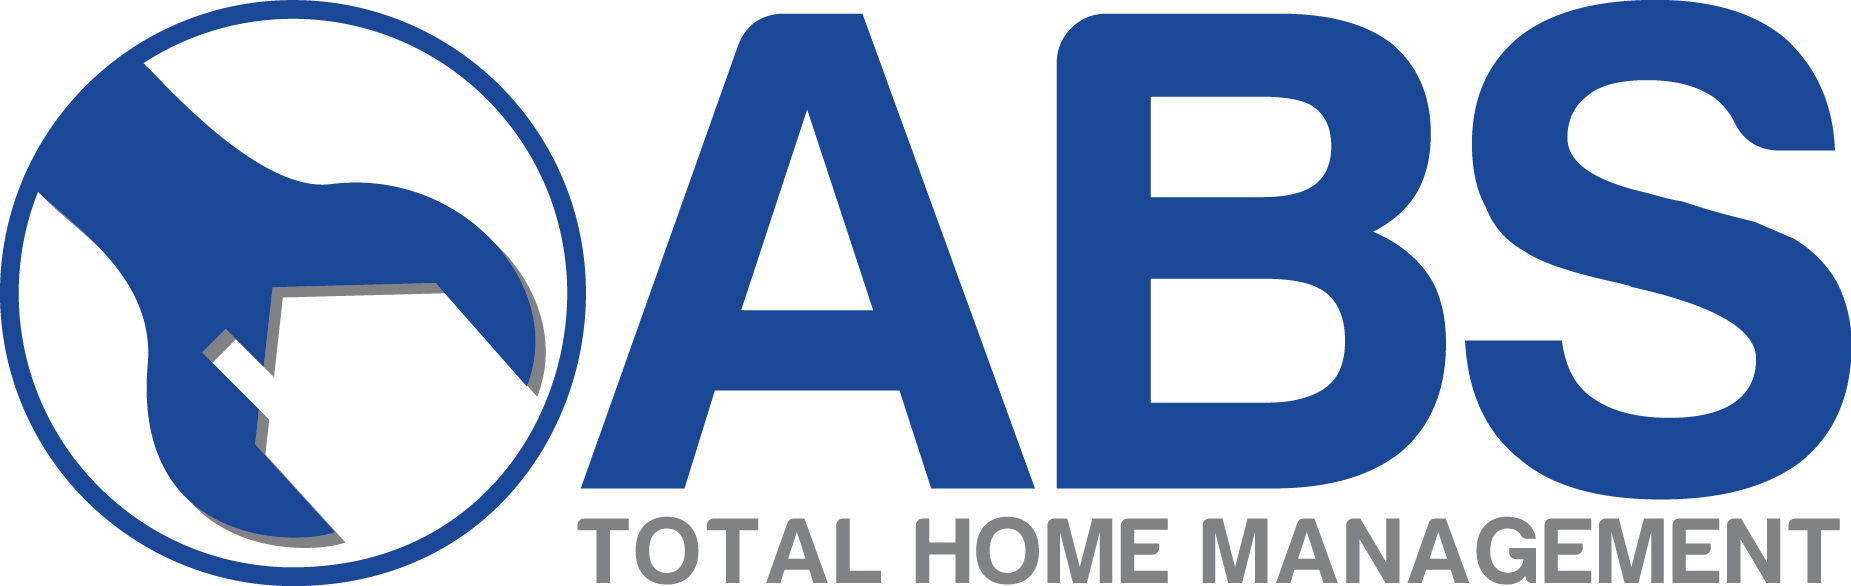 ABS Total Home Management